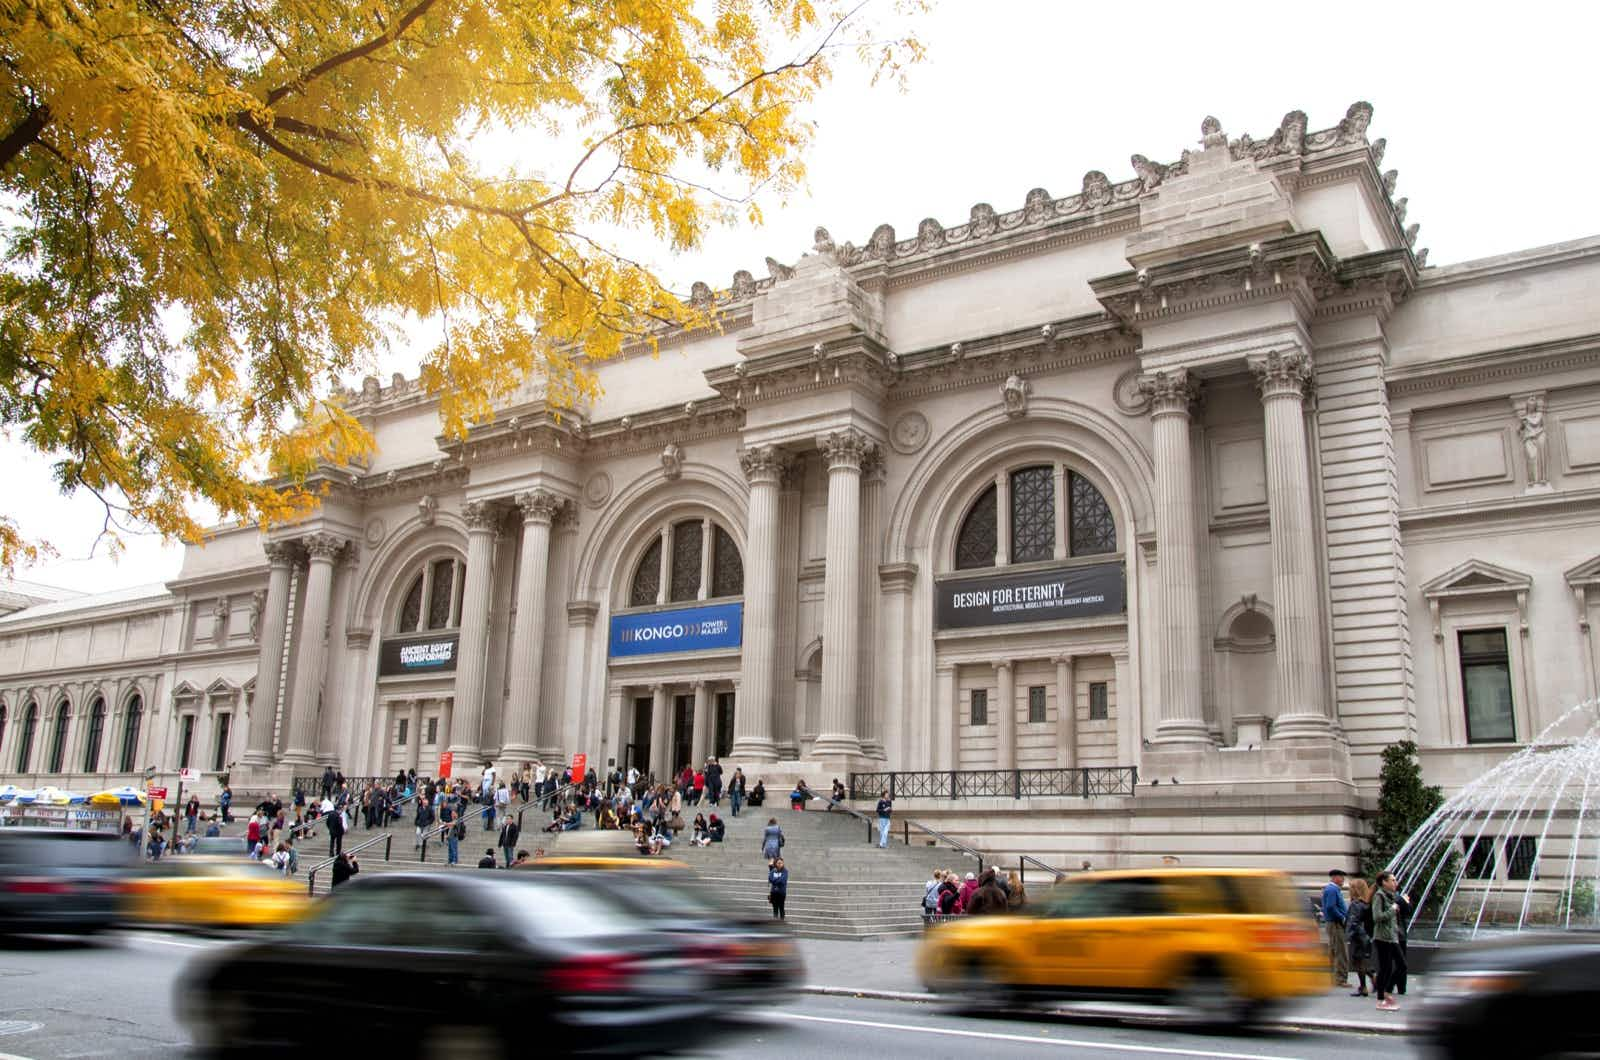 The American Museum of Natural History is located on the Upper West Side of Manhattan © Lady-Photo / Getty Images